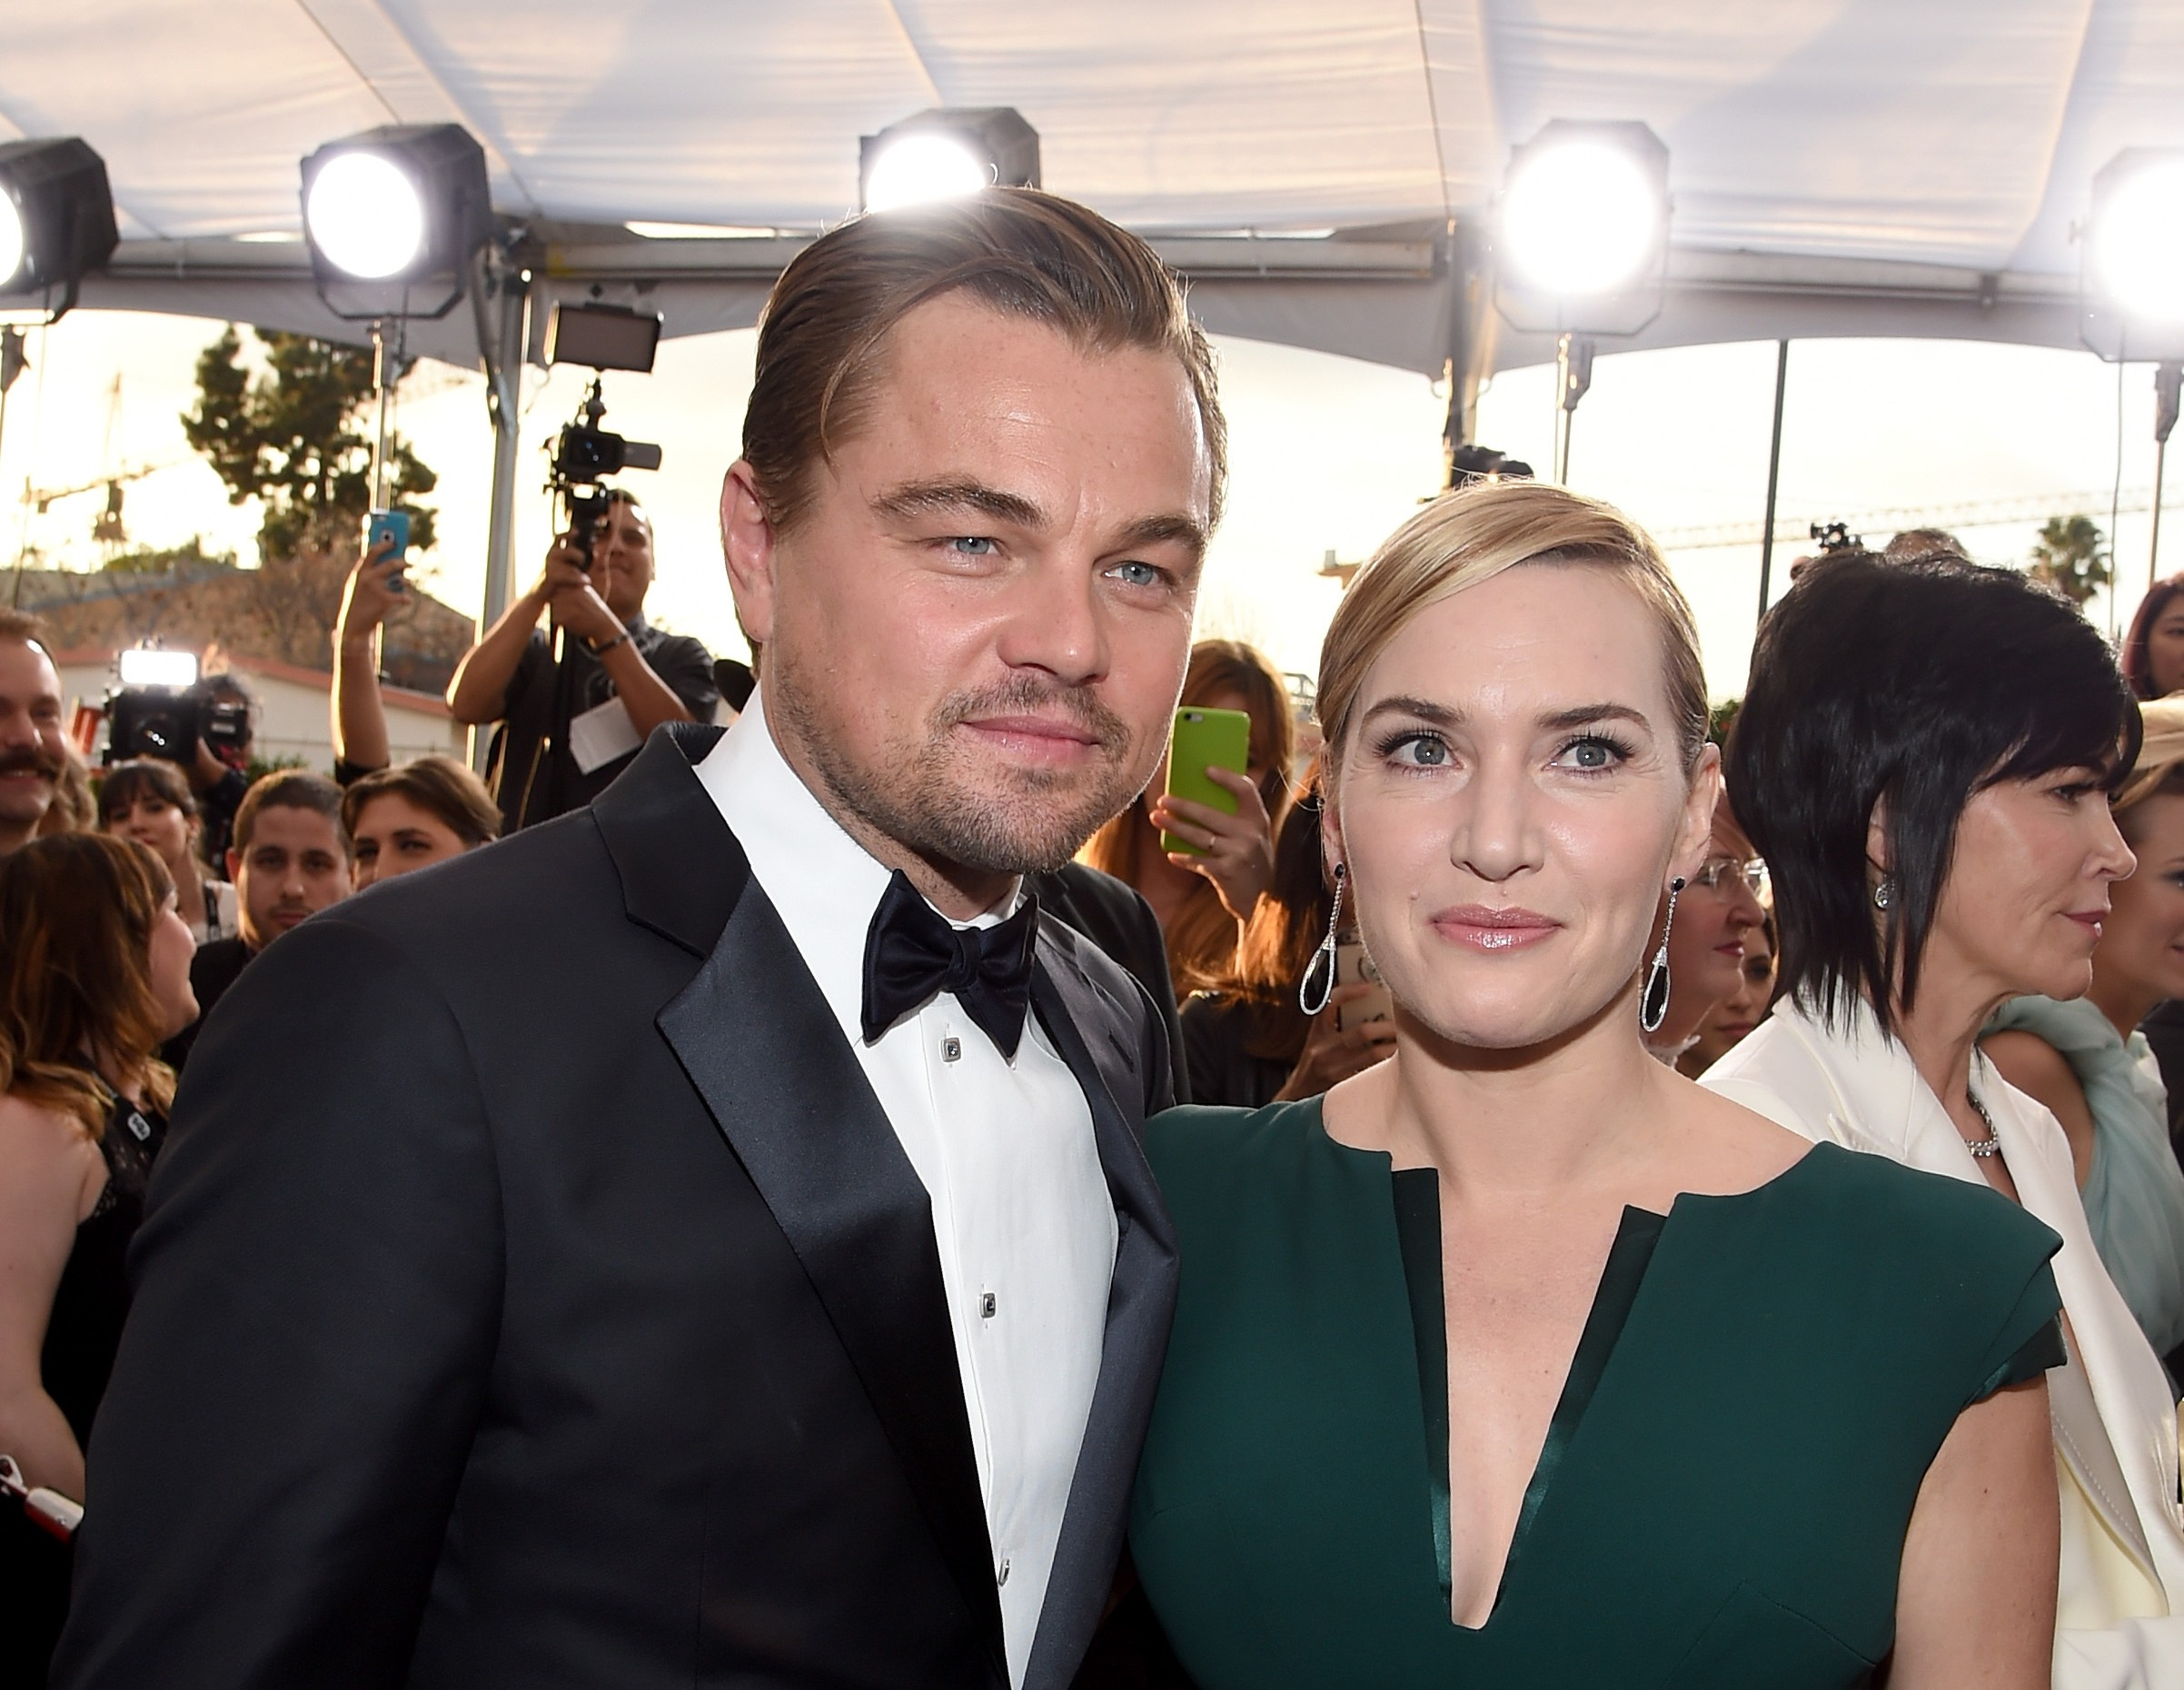 Kate Winslet and Leonardo DiCaprio save dying mother's life as they raise money for cancer treatment